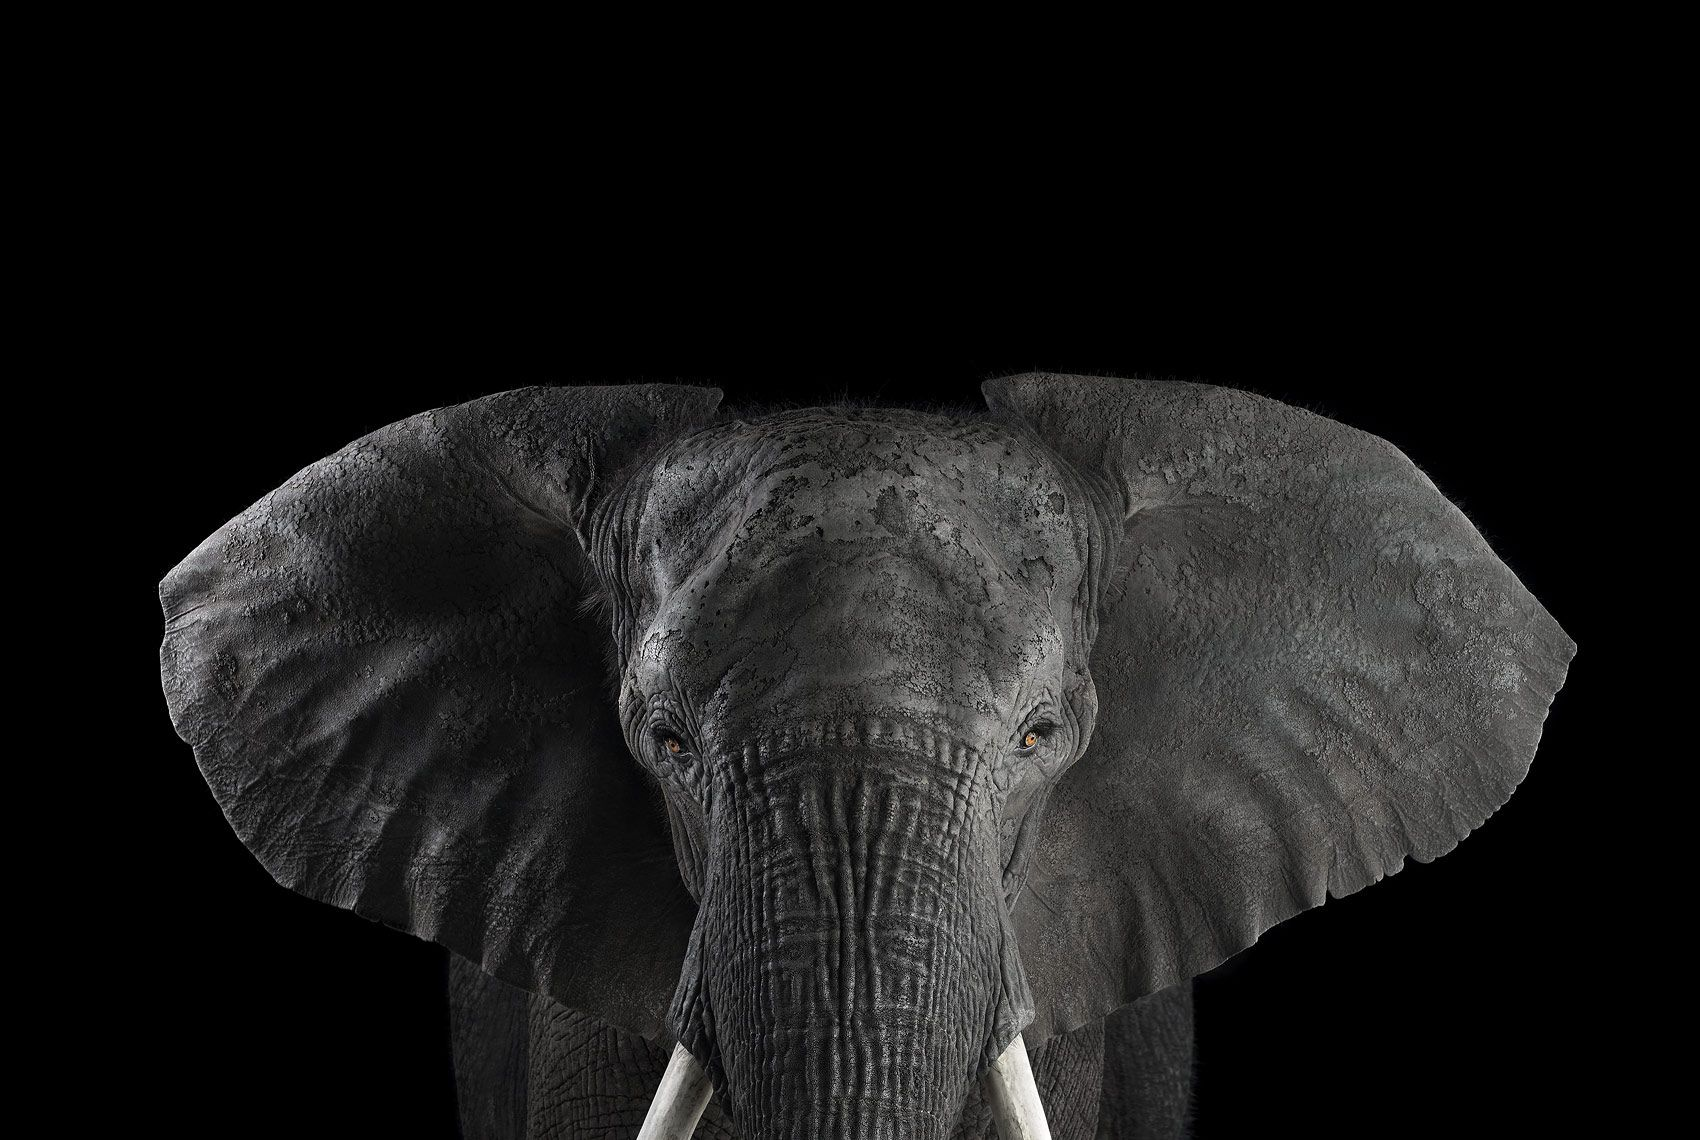 African Elephant #1, Los Angeles, CA, 2011